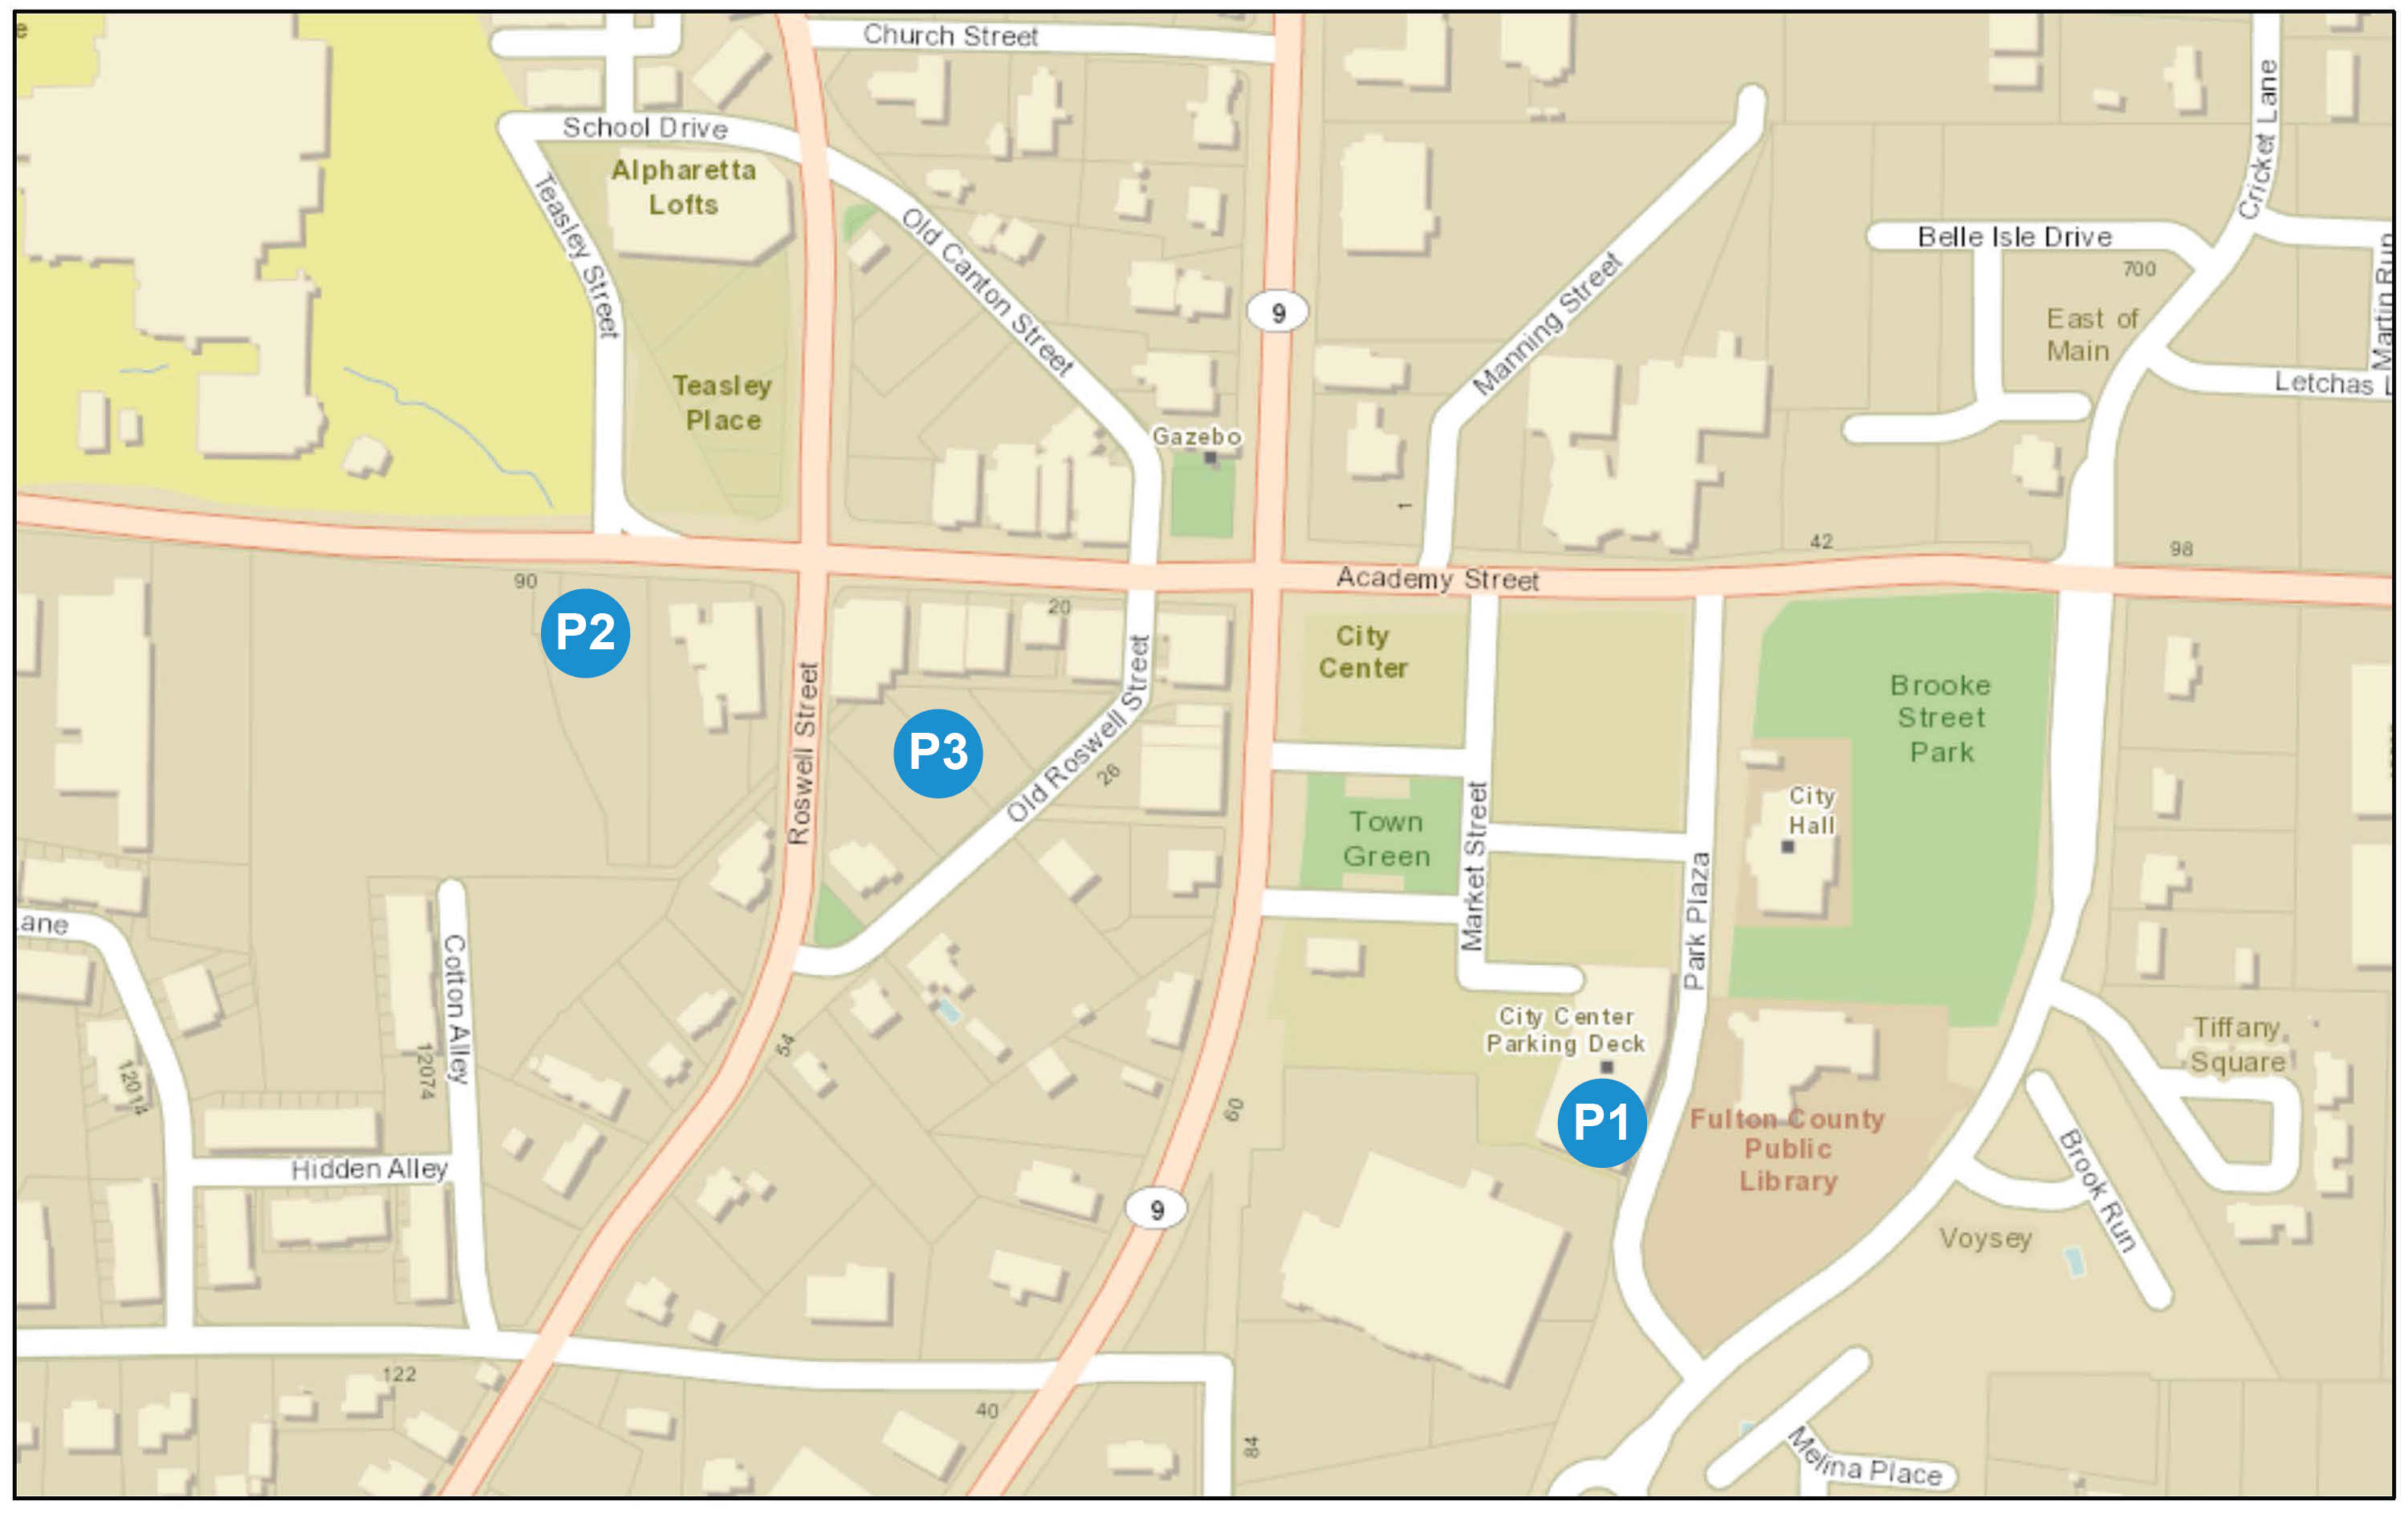 Parking Deck Locations